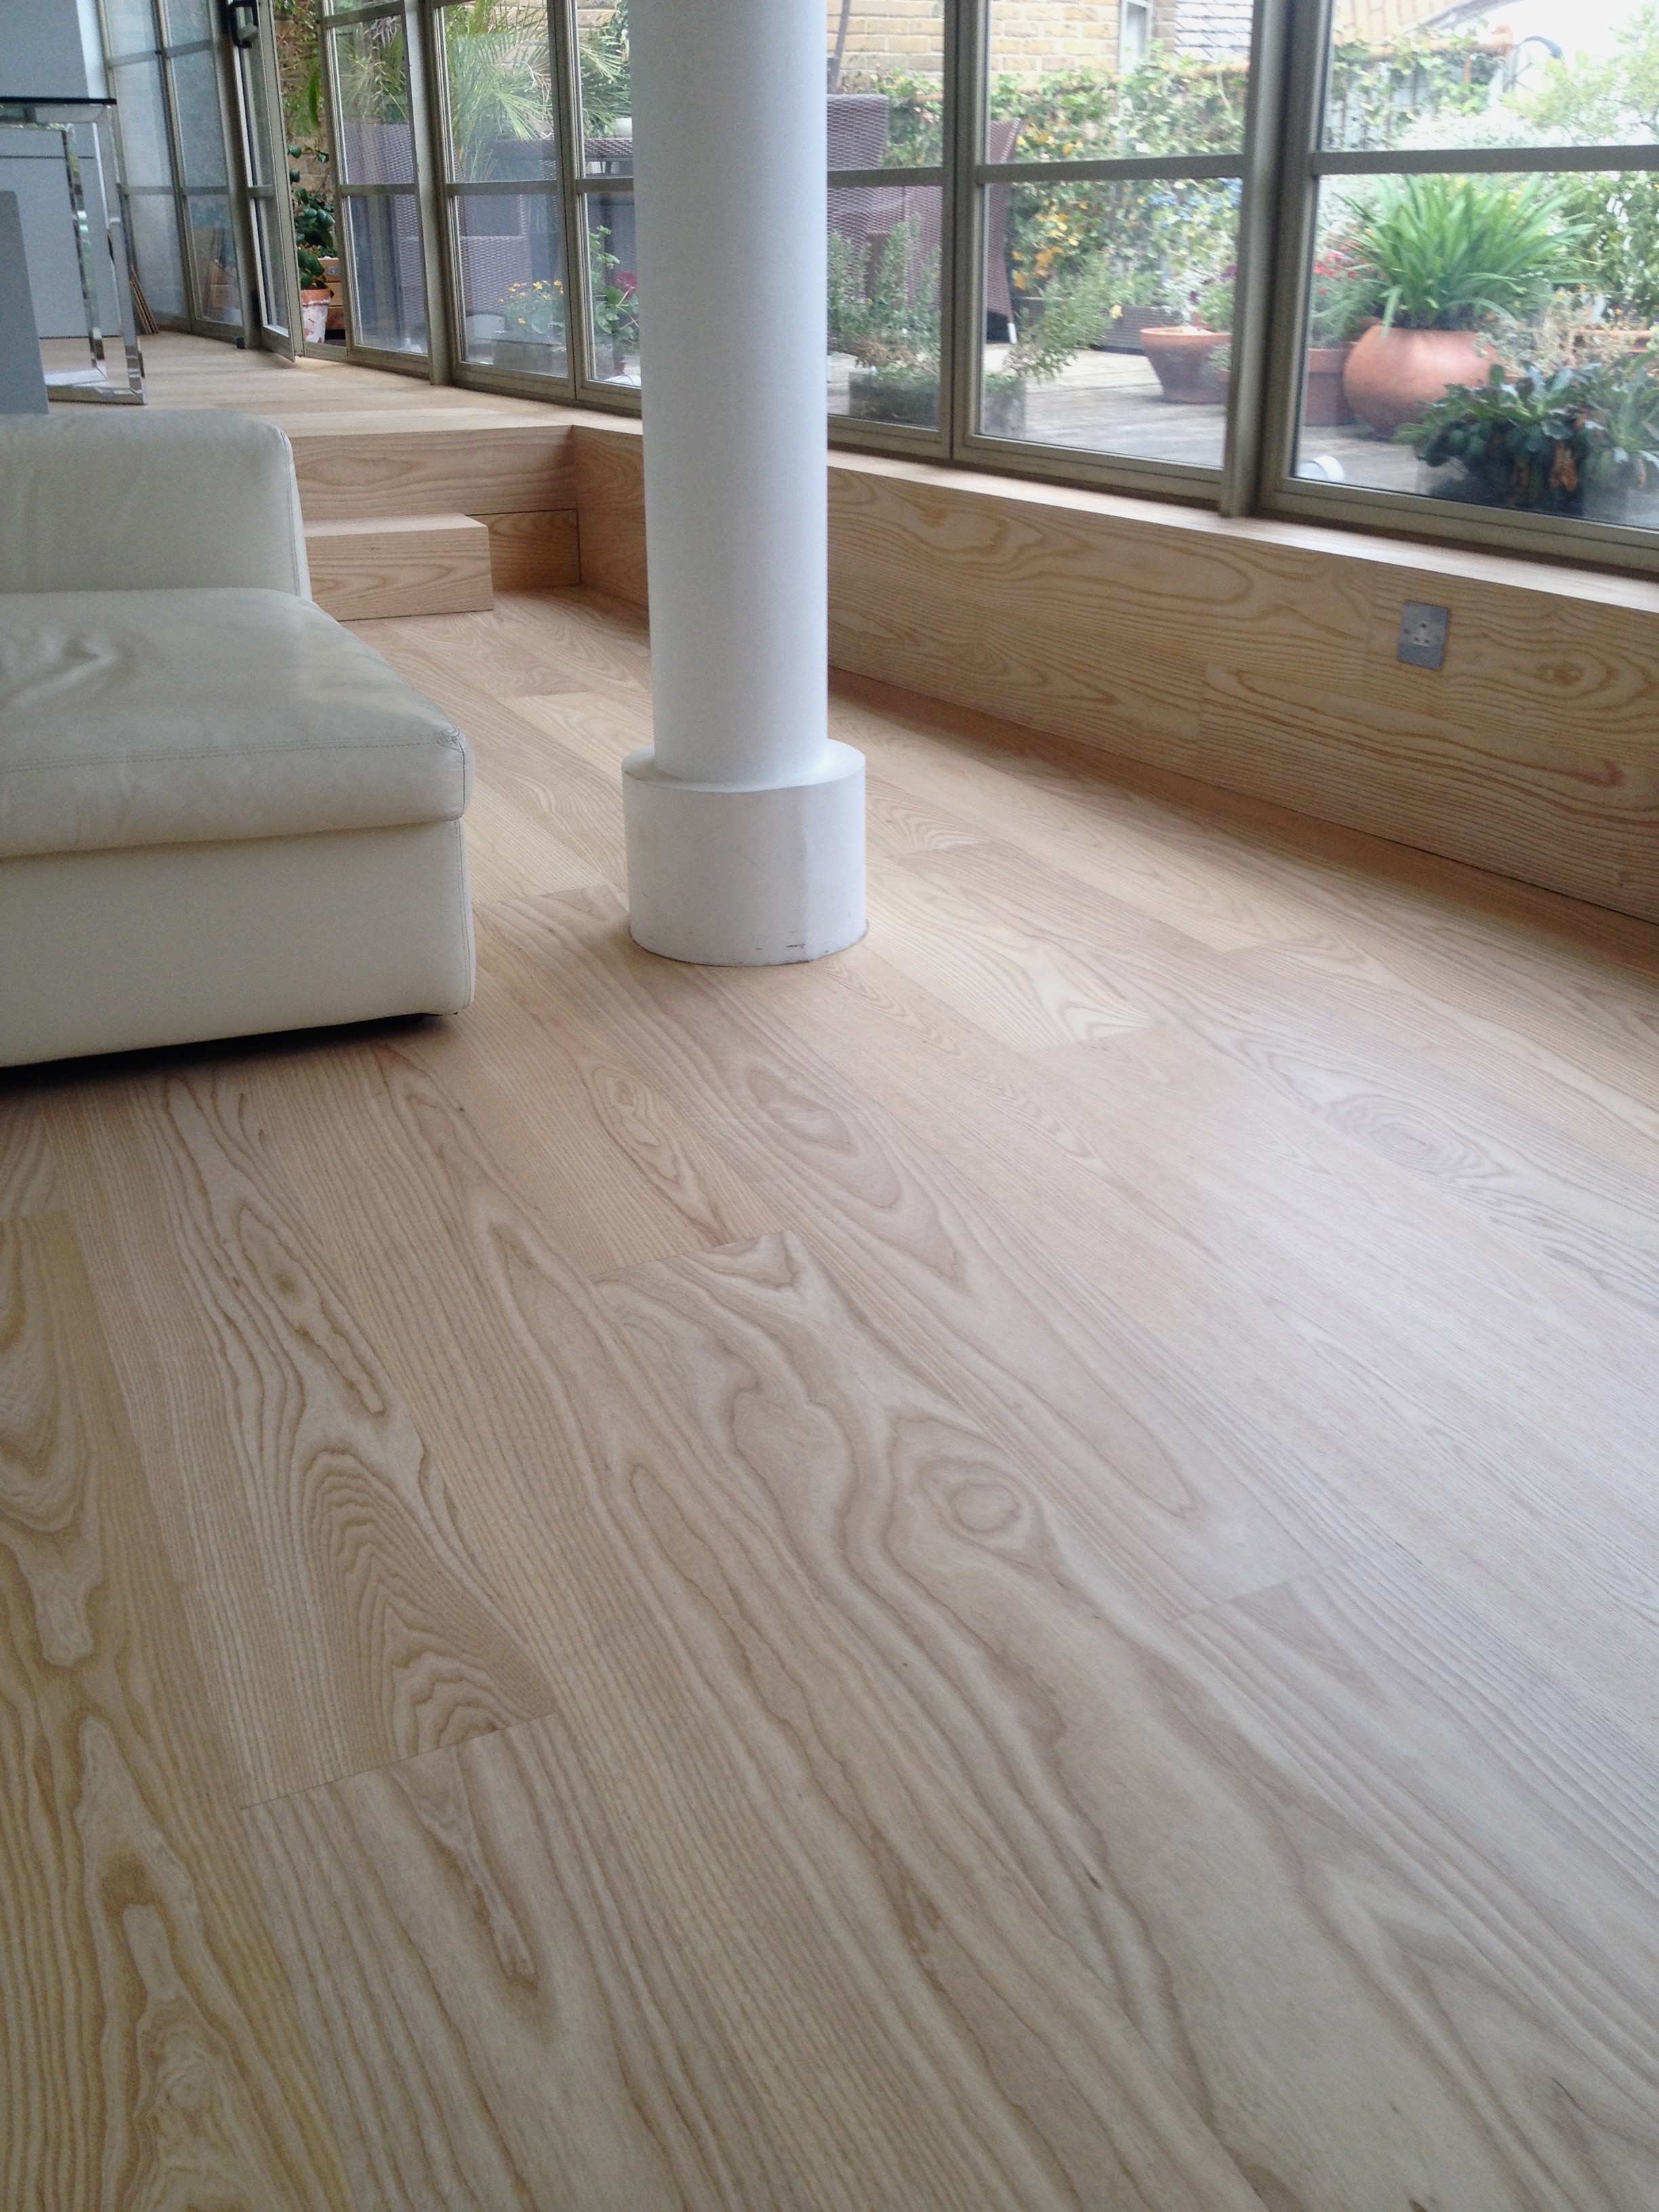 Ash floor with natural finish.